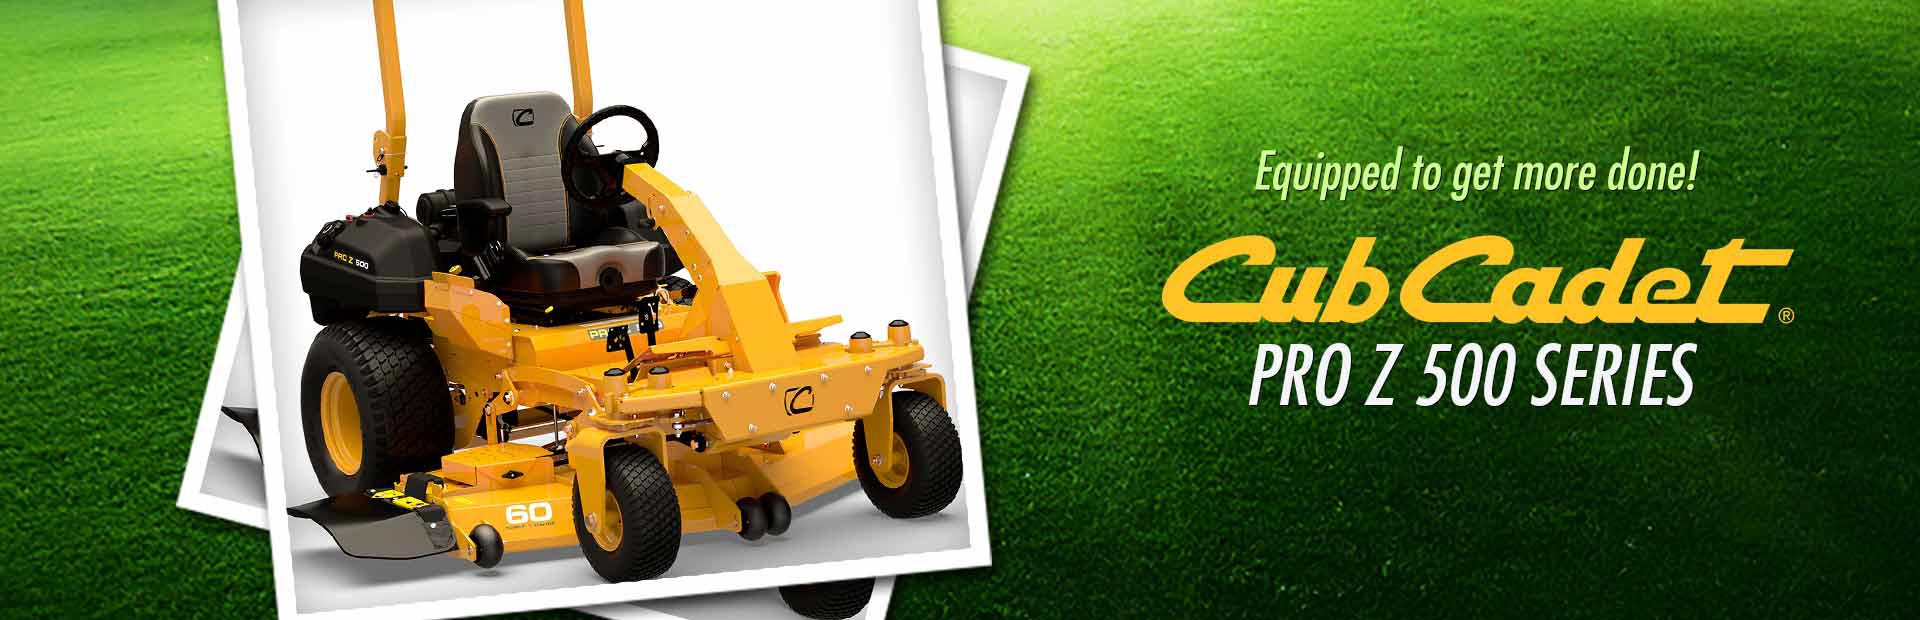 Cub Cadet Pro Z 500 Series: Click here to view the models.